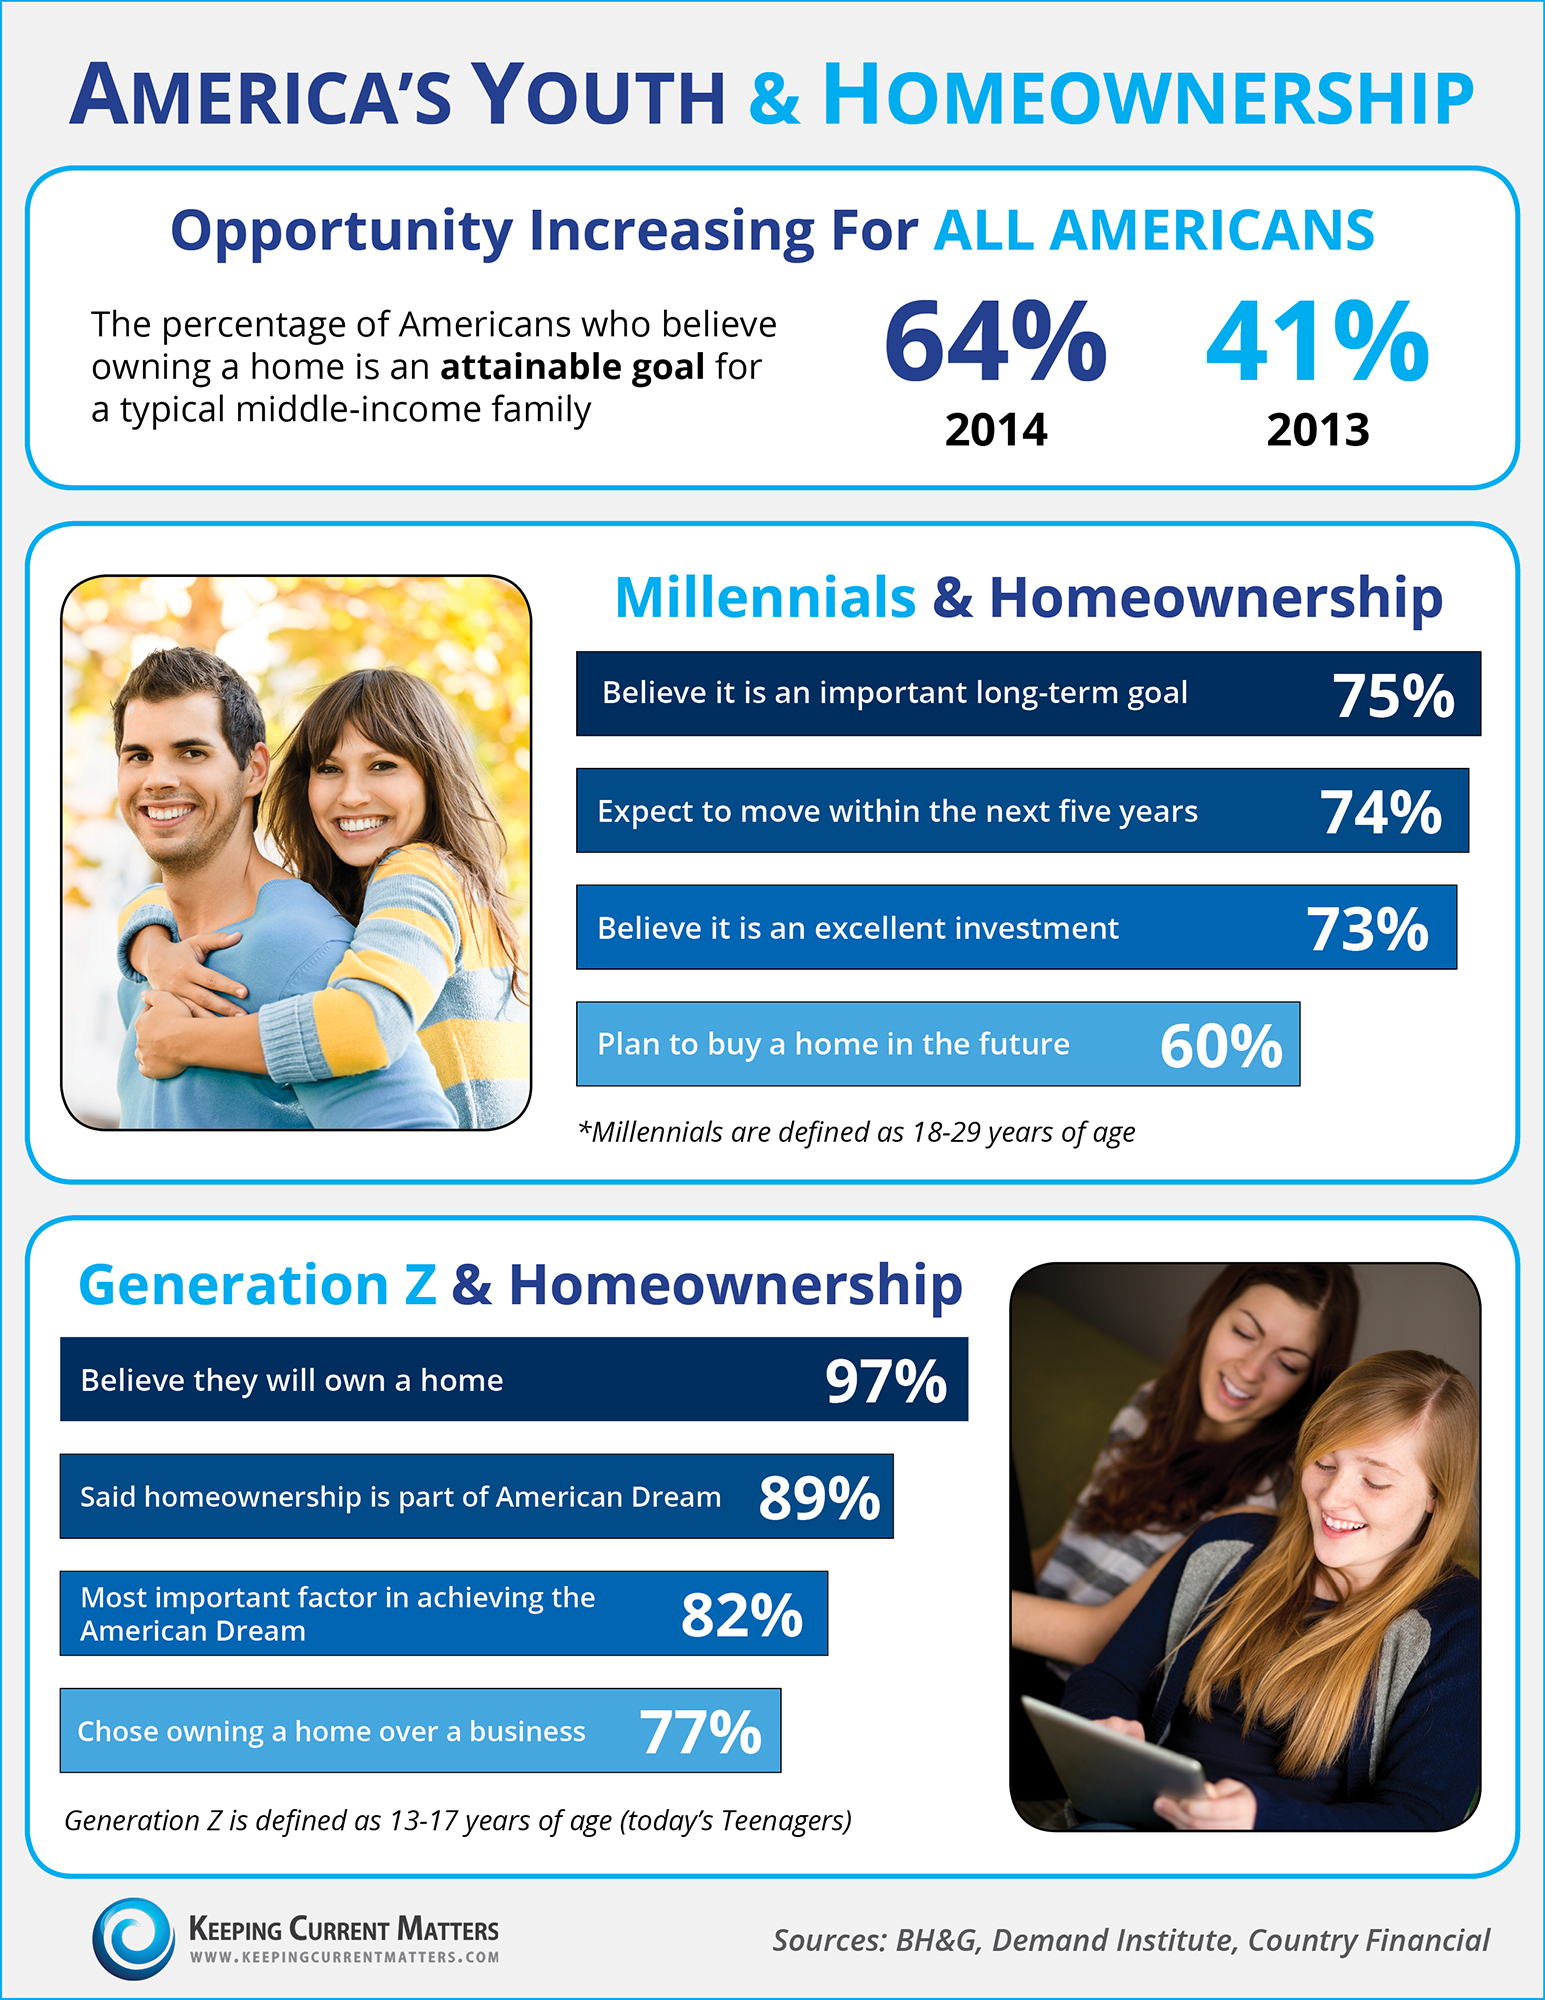 Youth & Homeownership [INFOGRAPHIC] | Keeping Current Matters